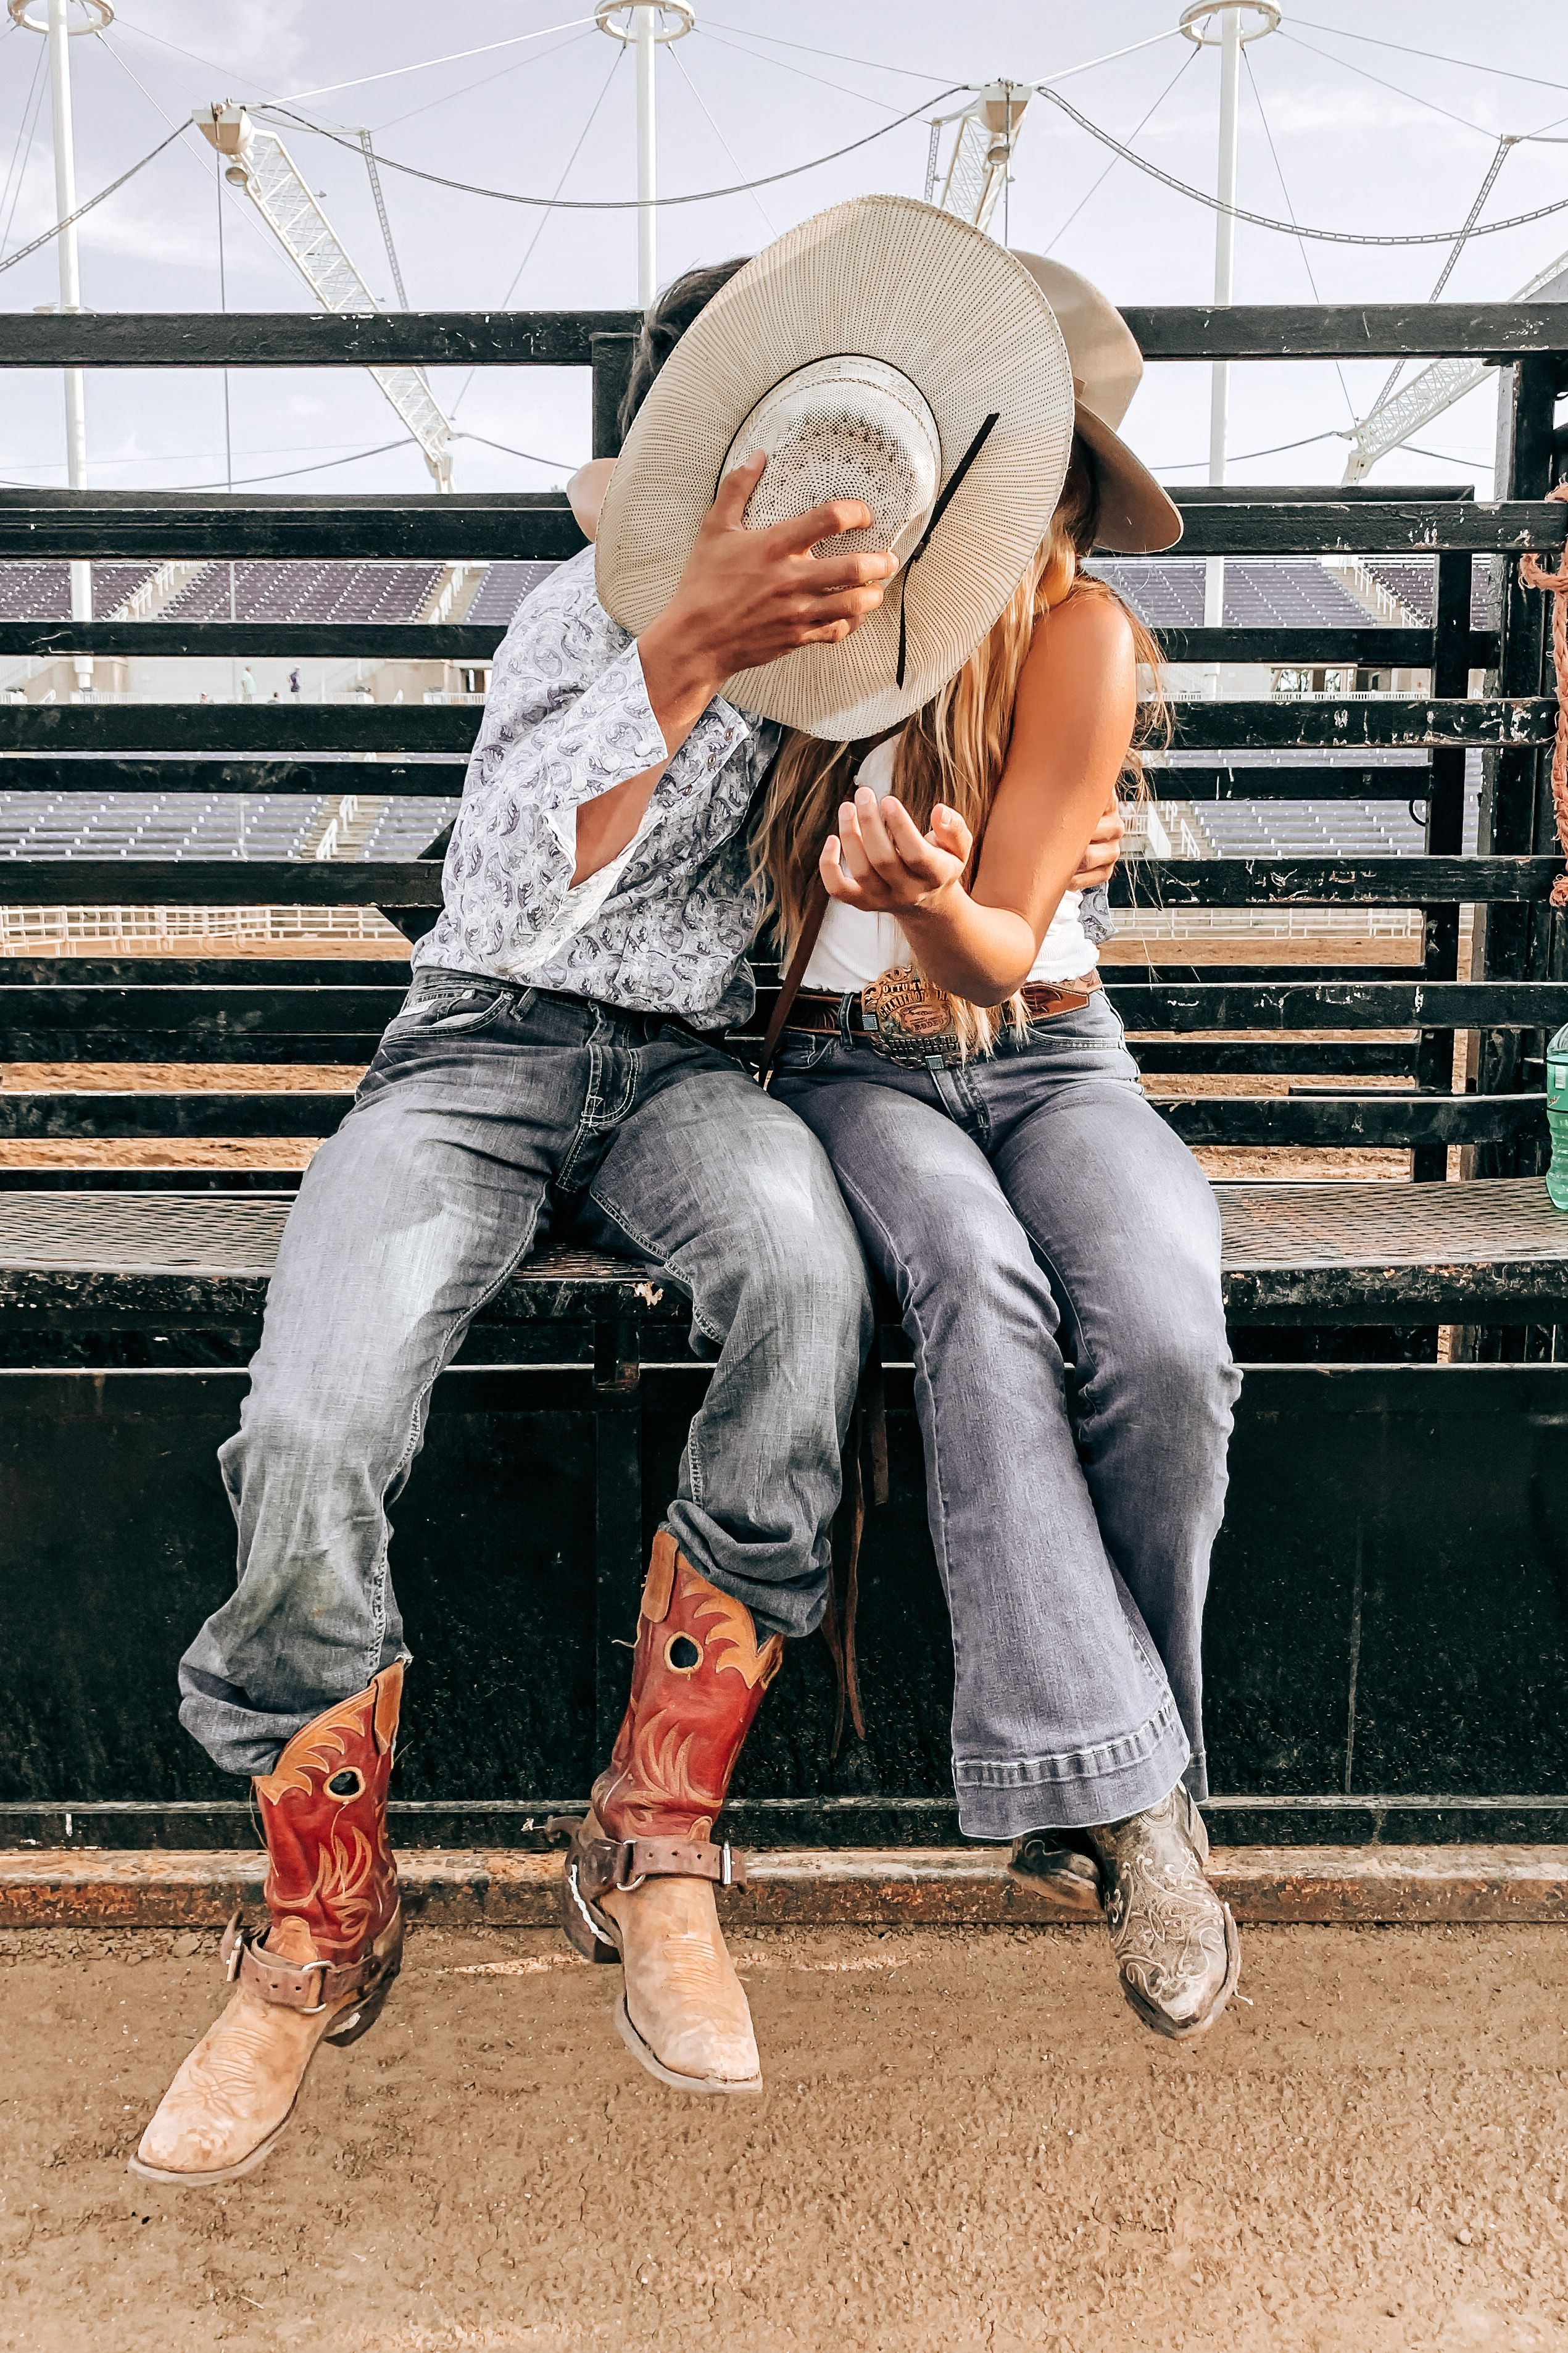 Rodeo Couple In 2020 Cute Country Couples Country Couples Country Couple Photos